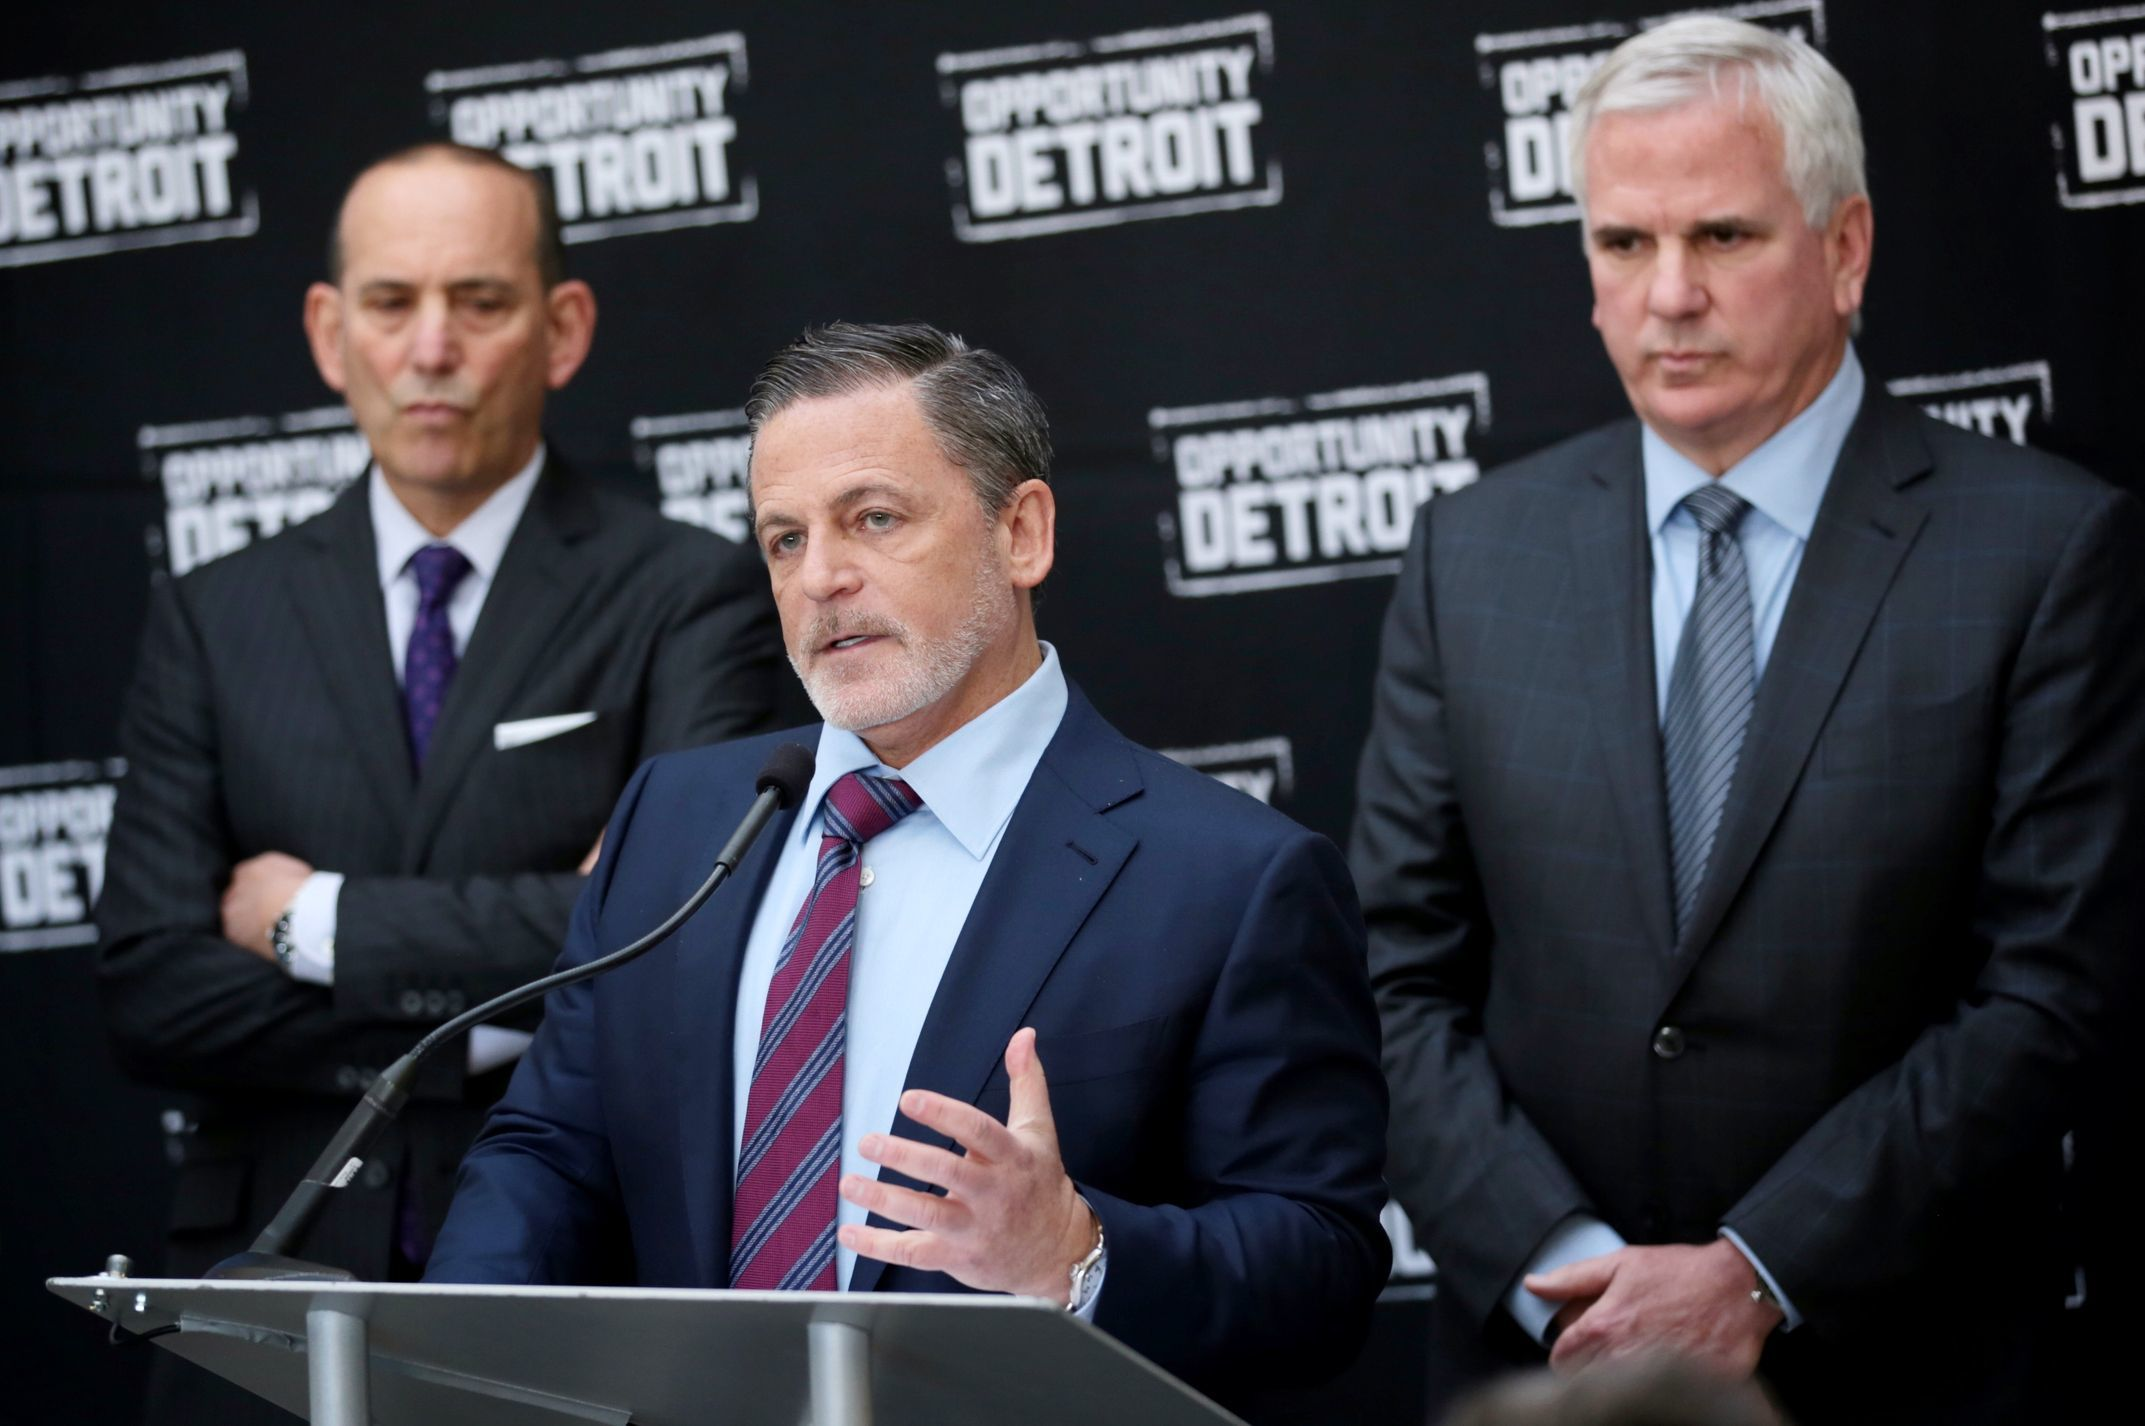 Quicken Loans founder Dan Gilbert, center, and Matt Cullen, president and CEO of Rock Ventures, right, appear during a press conference on  April 27, 2016, to announce a partnership to bring a Major League Soccer club to Detroit. At left is MLS Commissioner Don Garber.